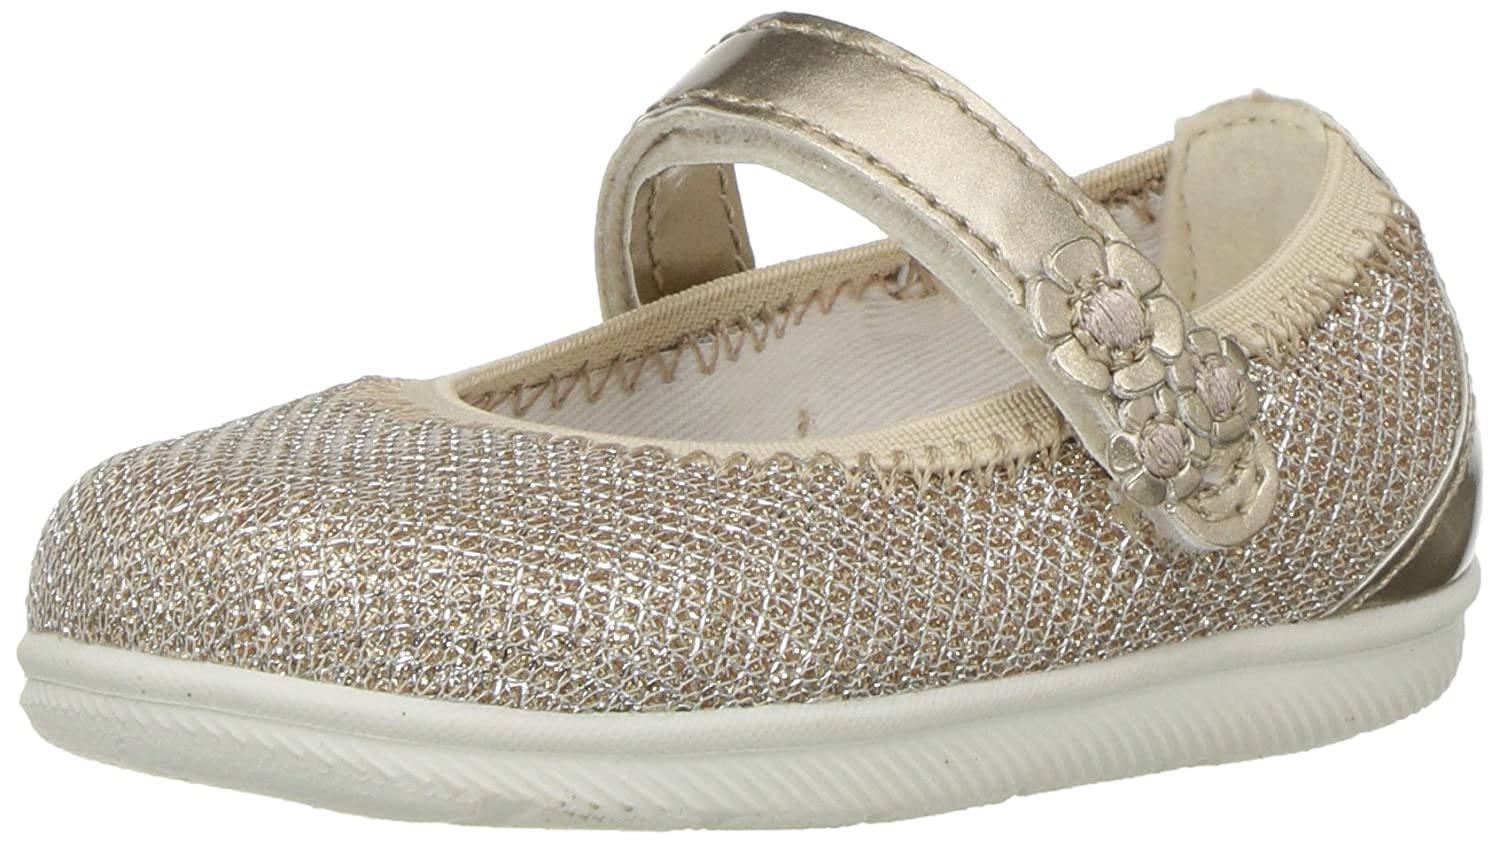 Stride Rite Kids' Lil Layla Mary Jane Flat PG59385